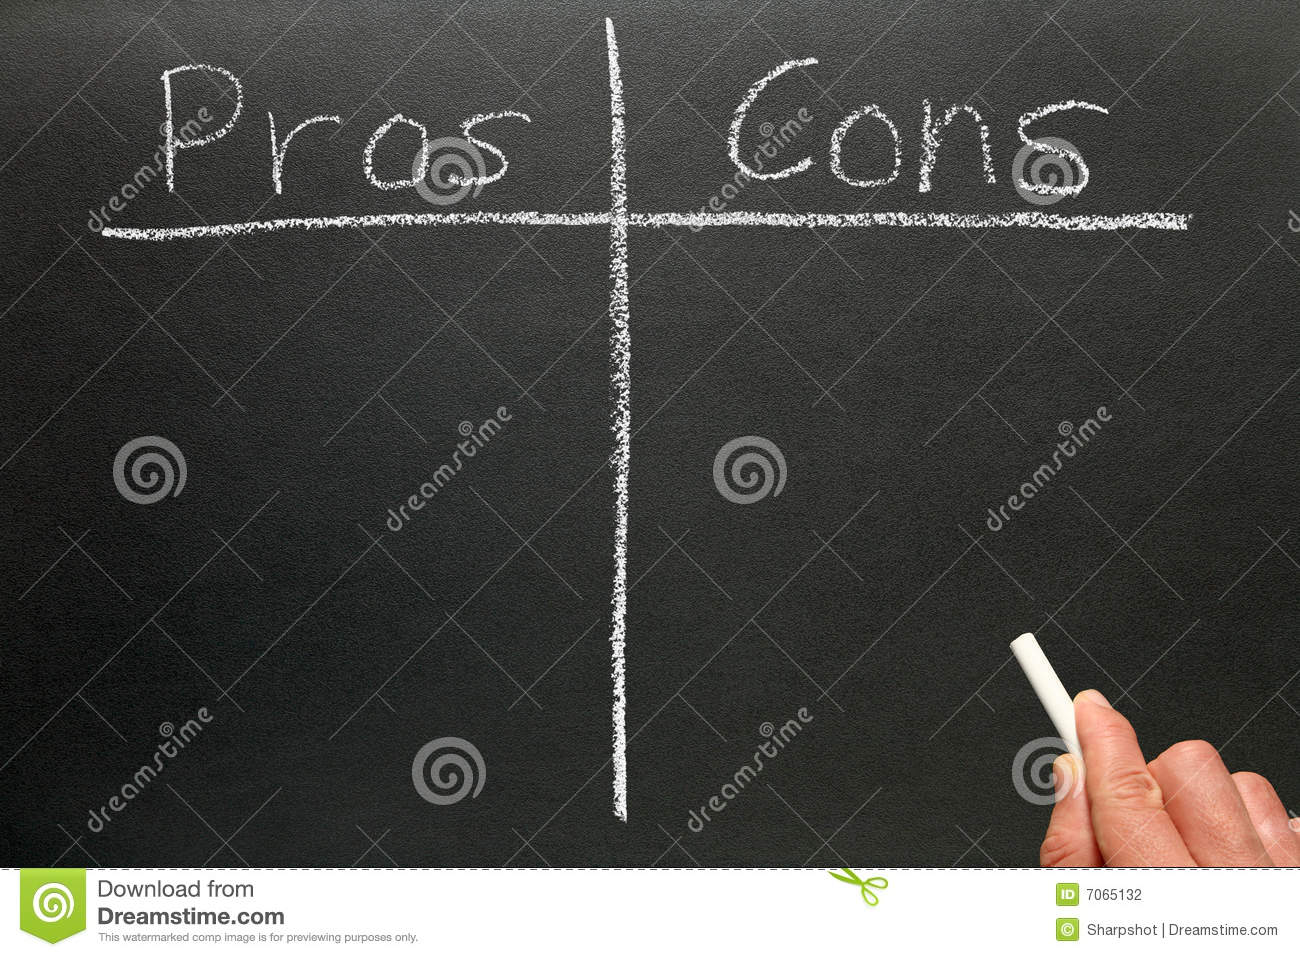 Communication Technology Pros and Cons